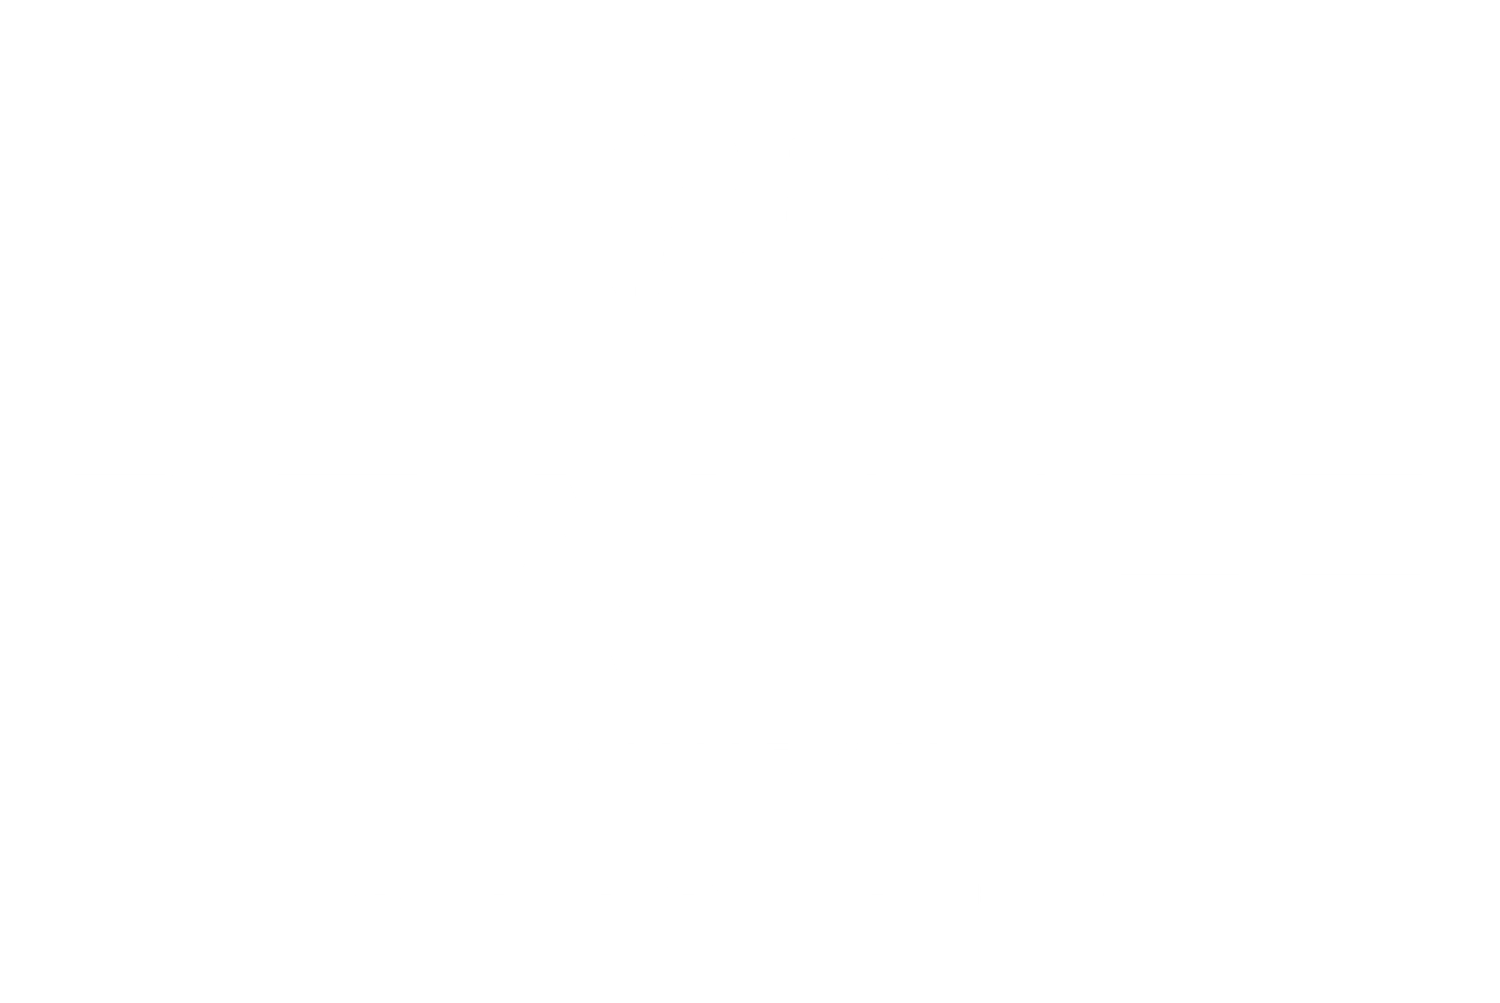 Real Life Church